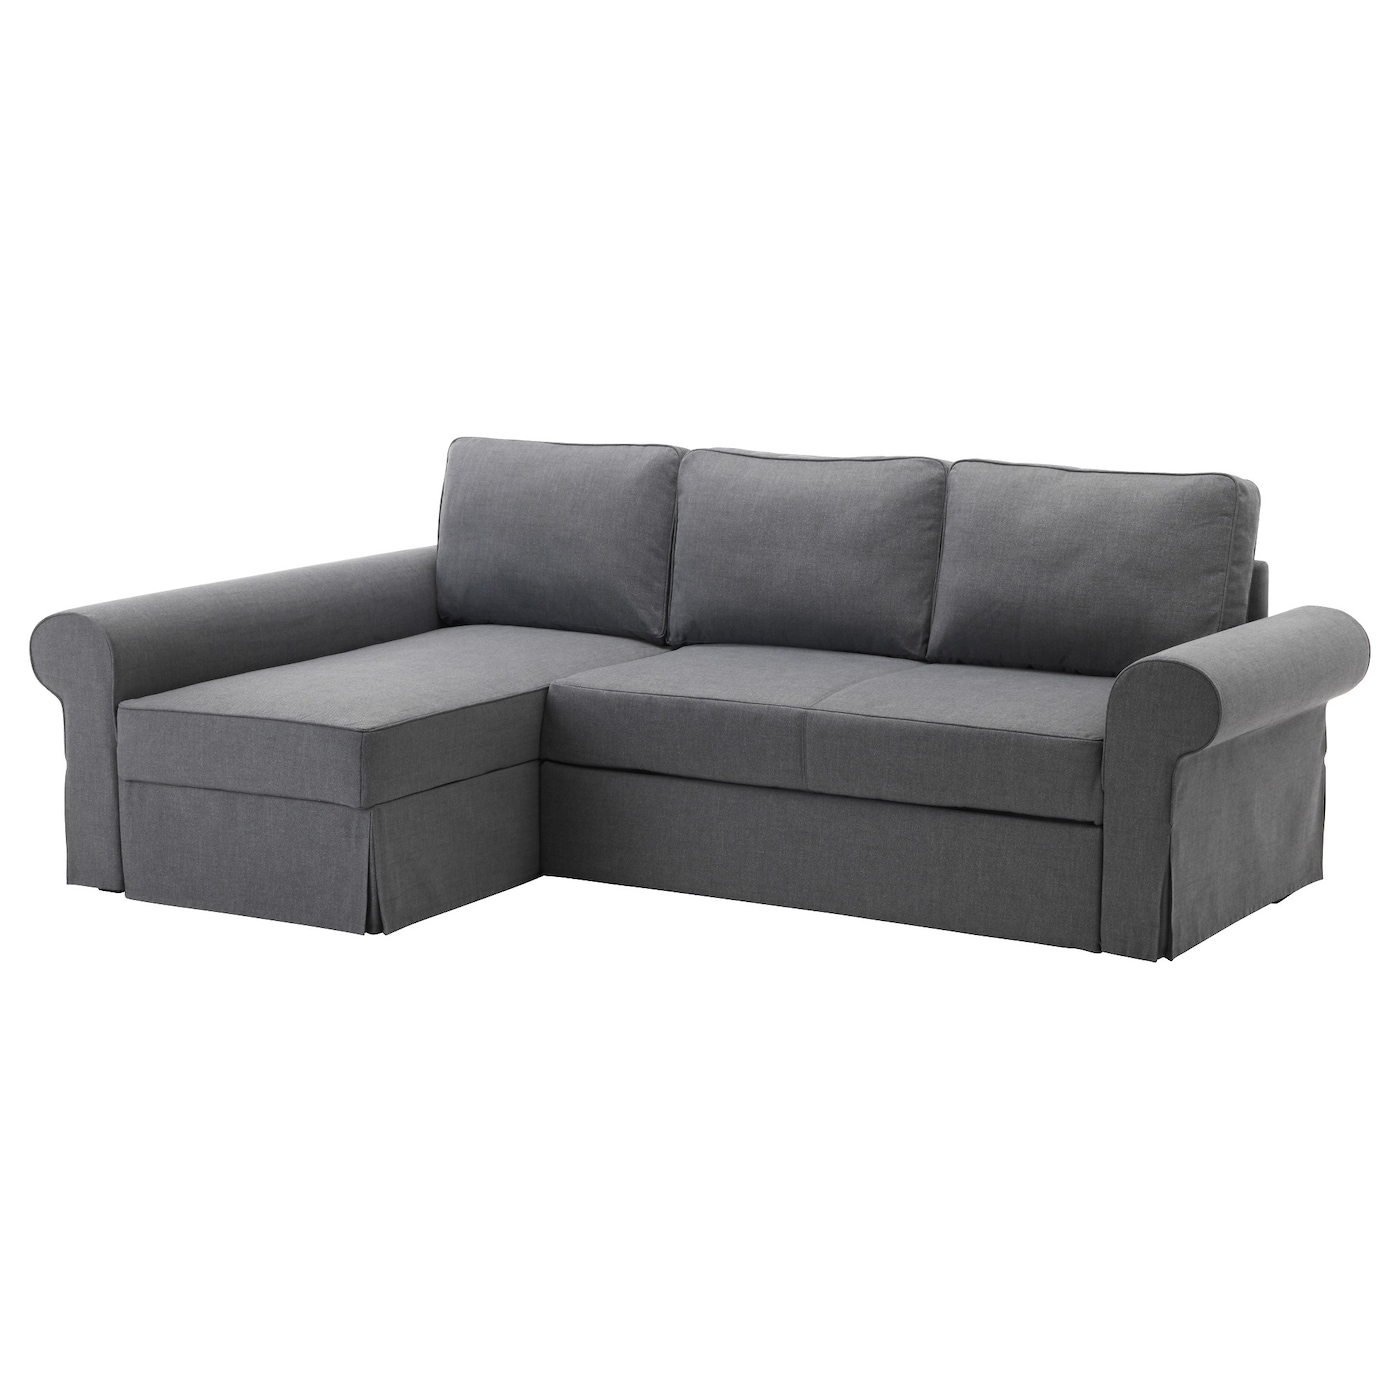 Sofa Cama Chaise Longue Piel Of Backabro Sofa Bed With Chaise Longue Nordvalla Dark Grey